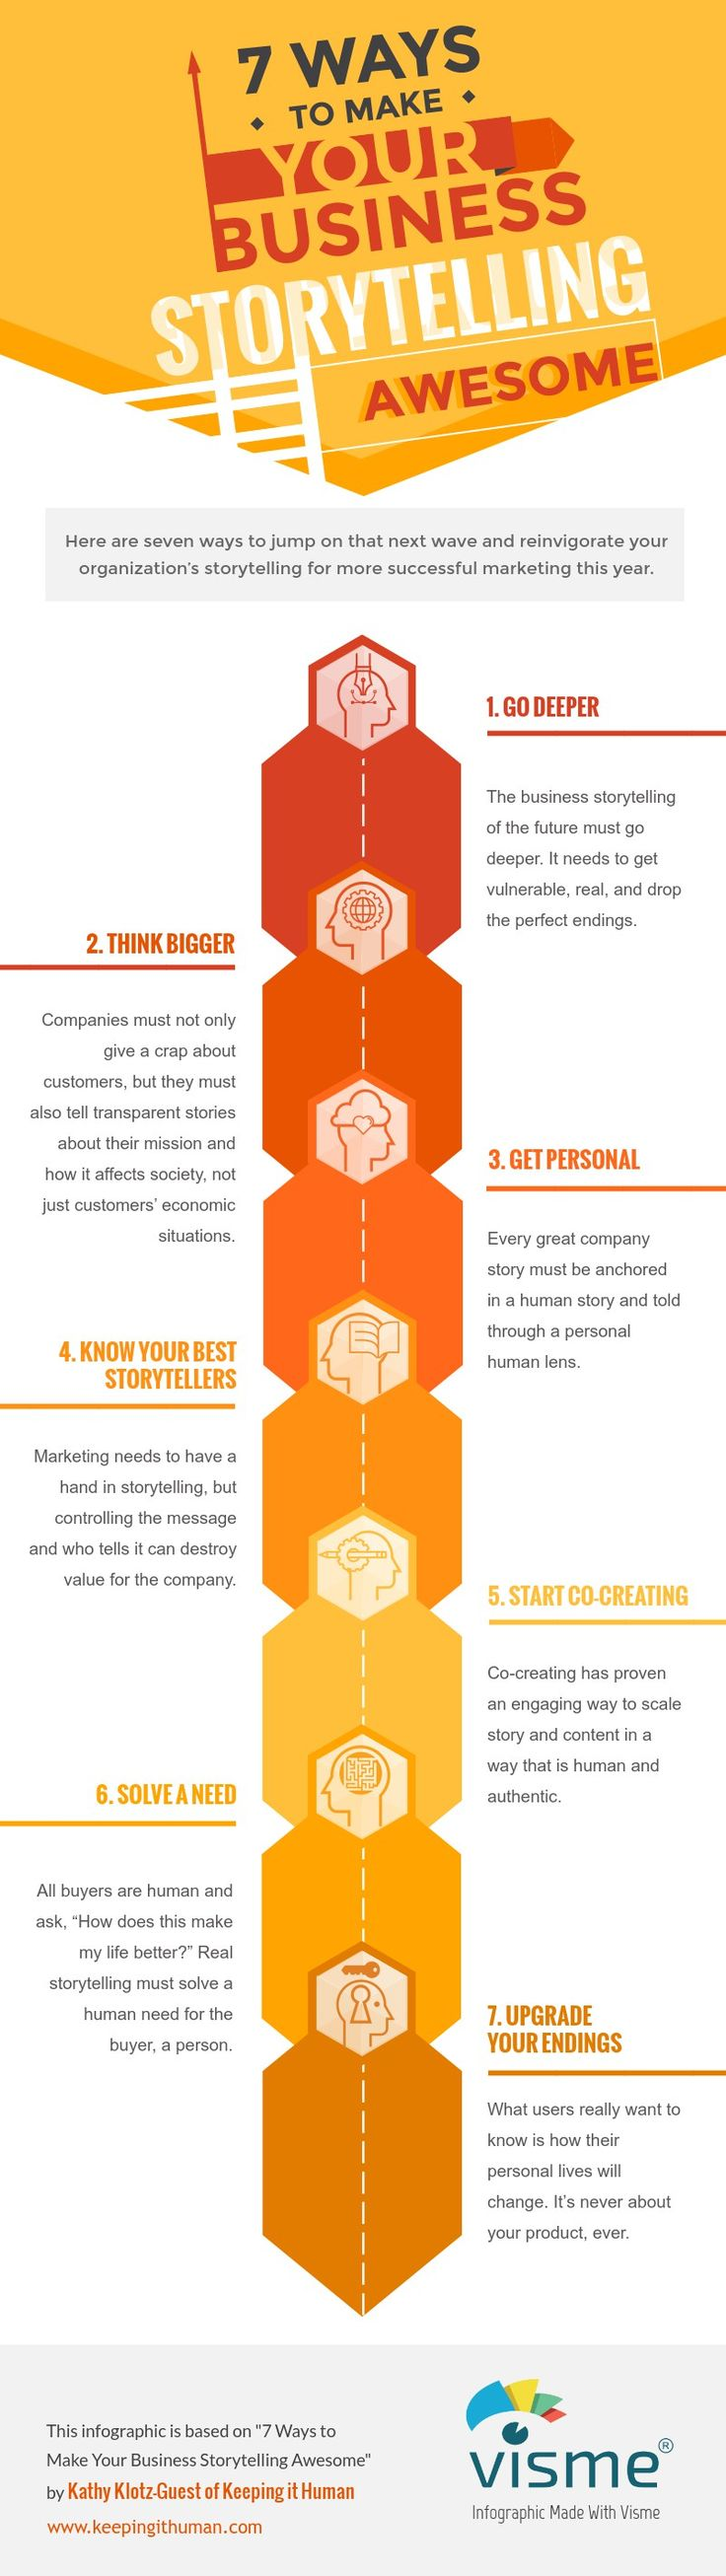 7 Ways to Make Your Business Storytelling Awesome [Infographic]  also see : http://www.techreviewbuzz.com/2016/12/top-10-most-addictive-games-for-android.html